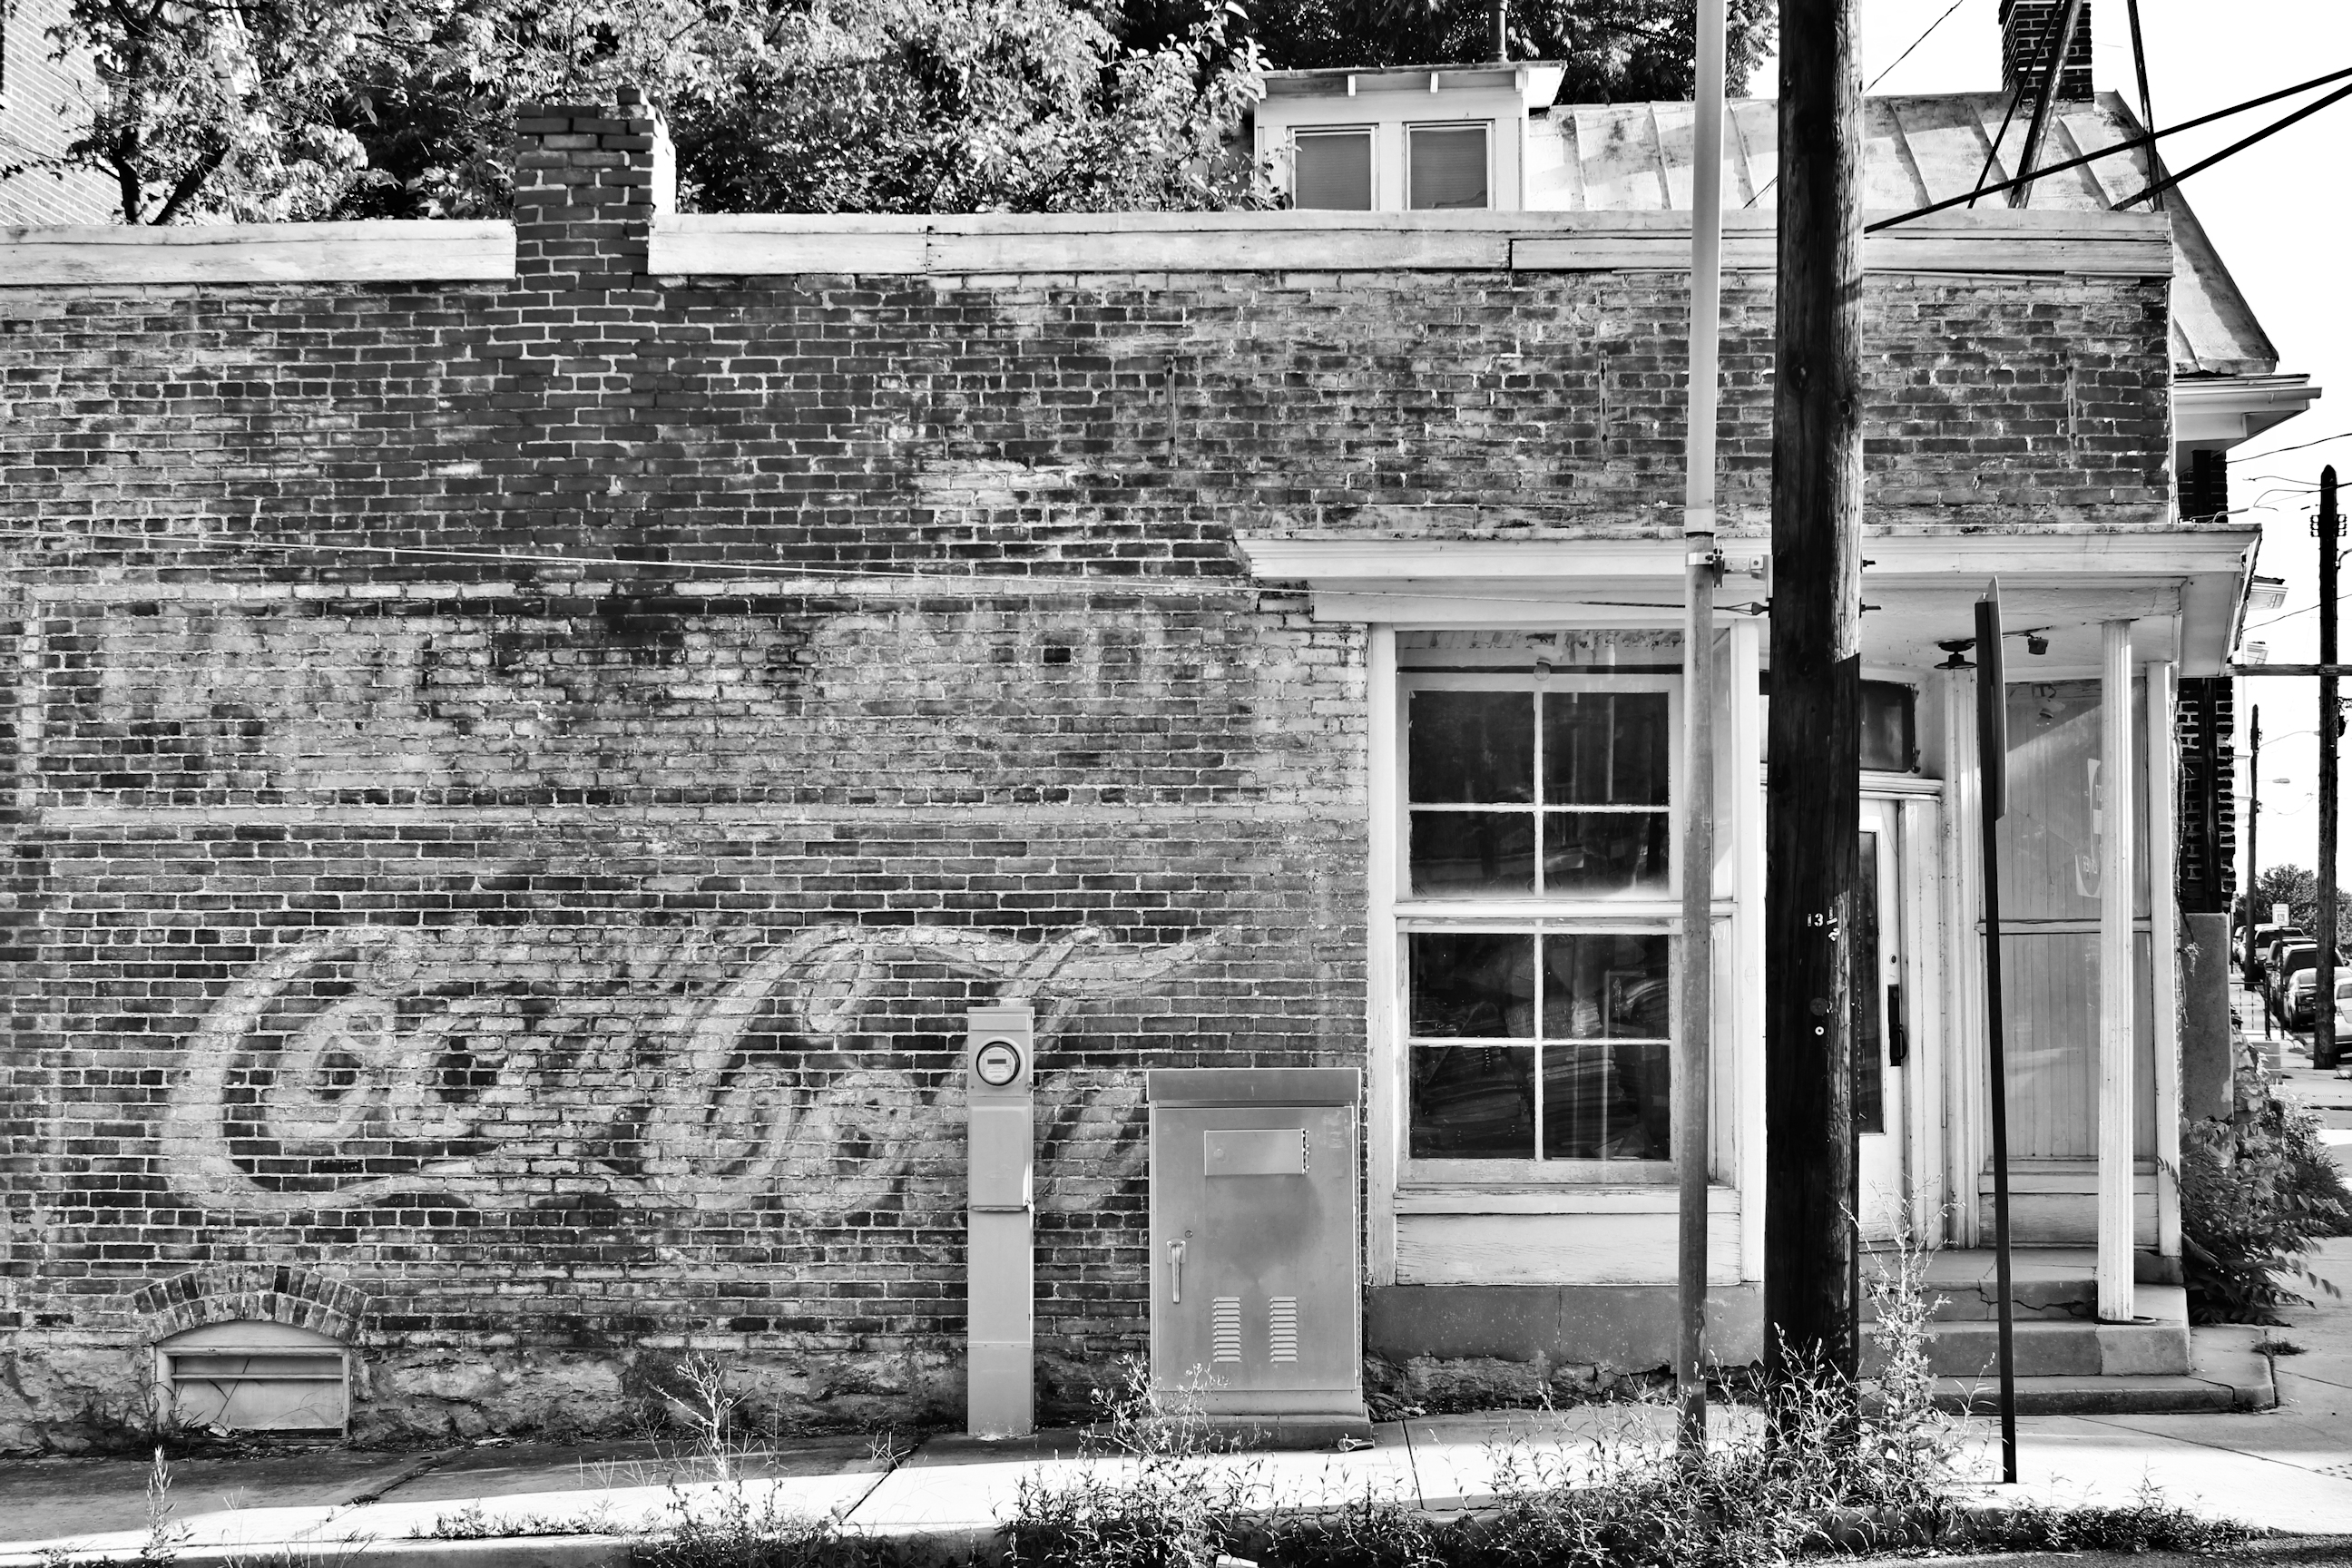 Faded vintage Coca Cola logo on the side of a closed down brick corner store.